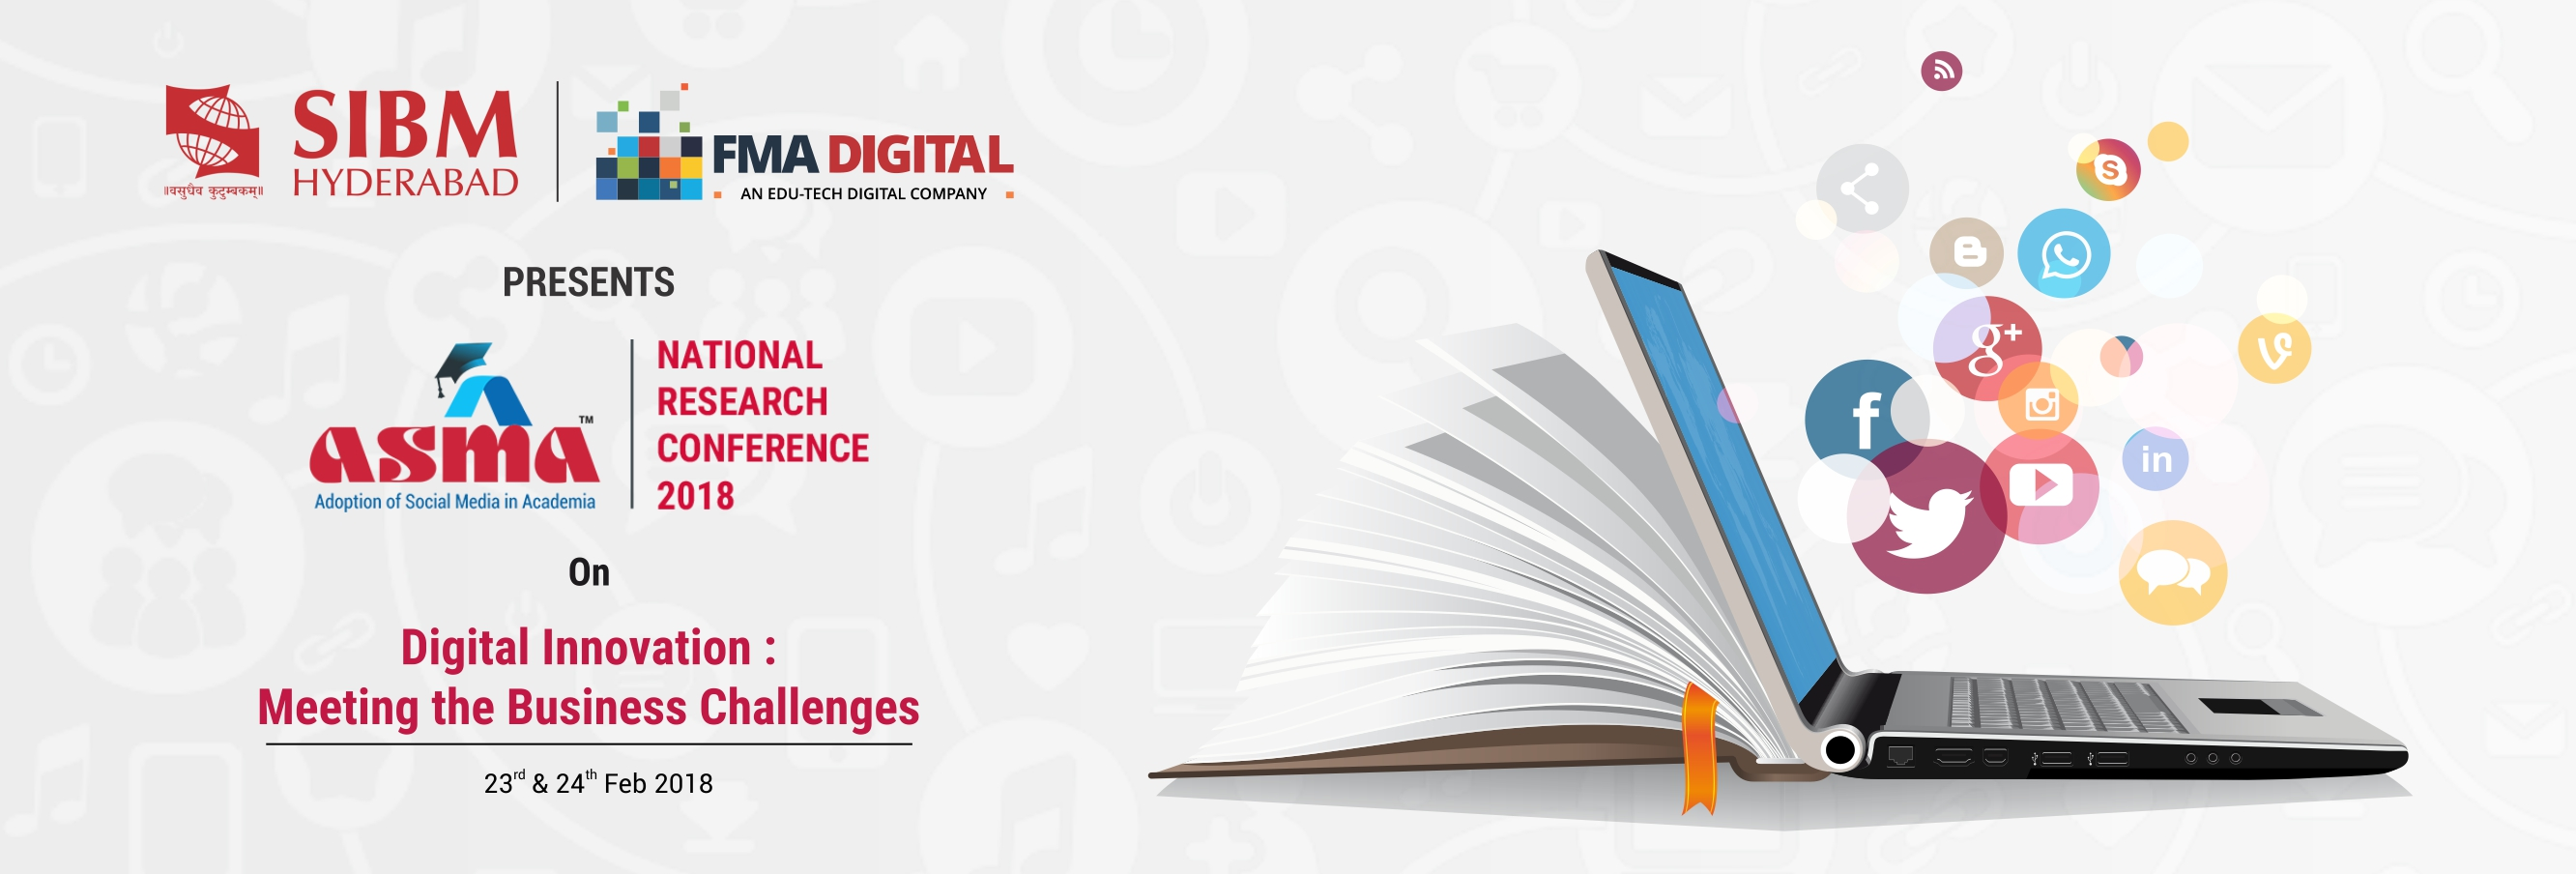 National Research Conference 2018 on Digital Innovation